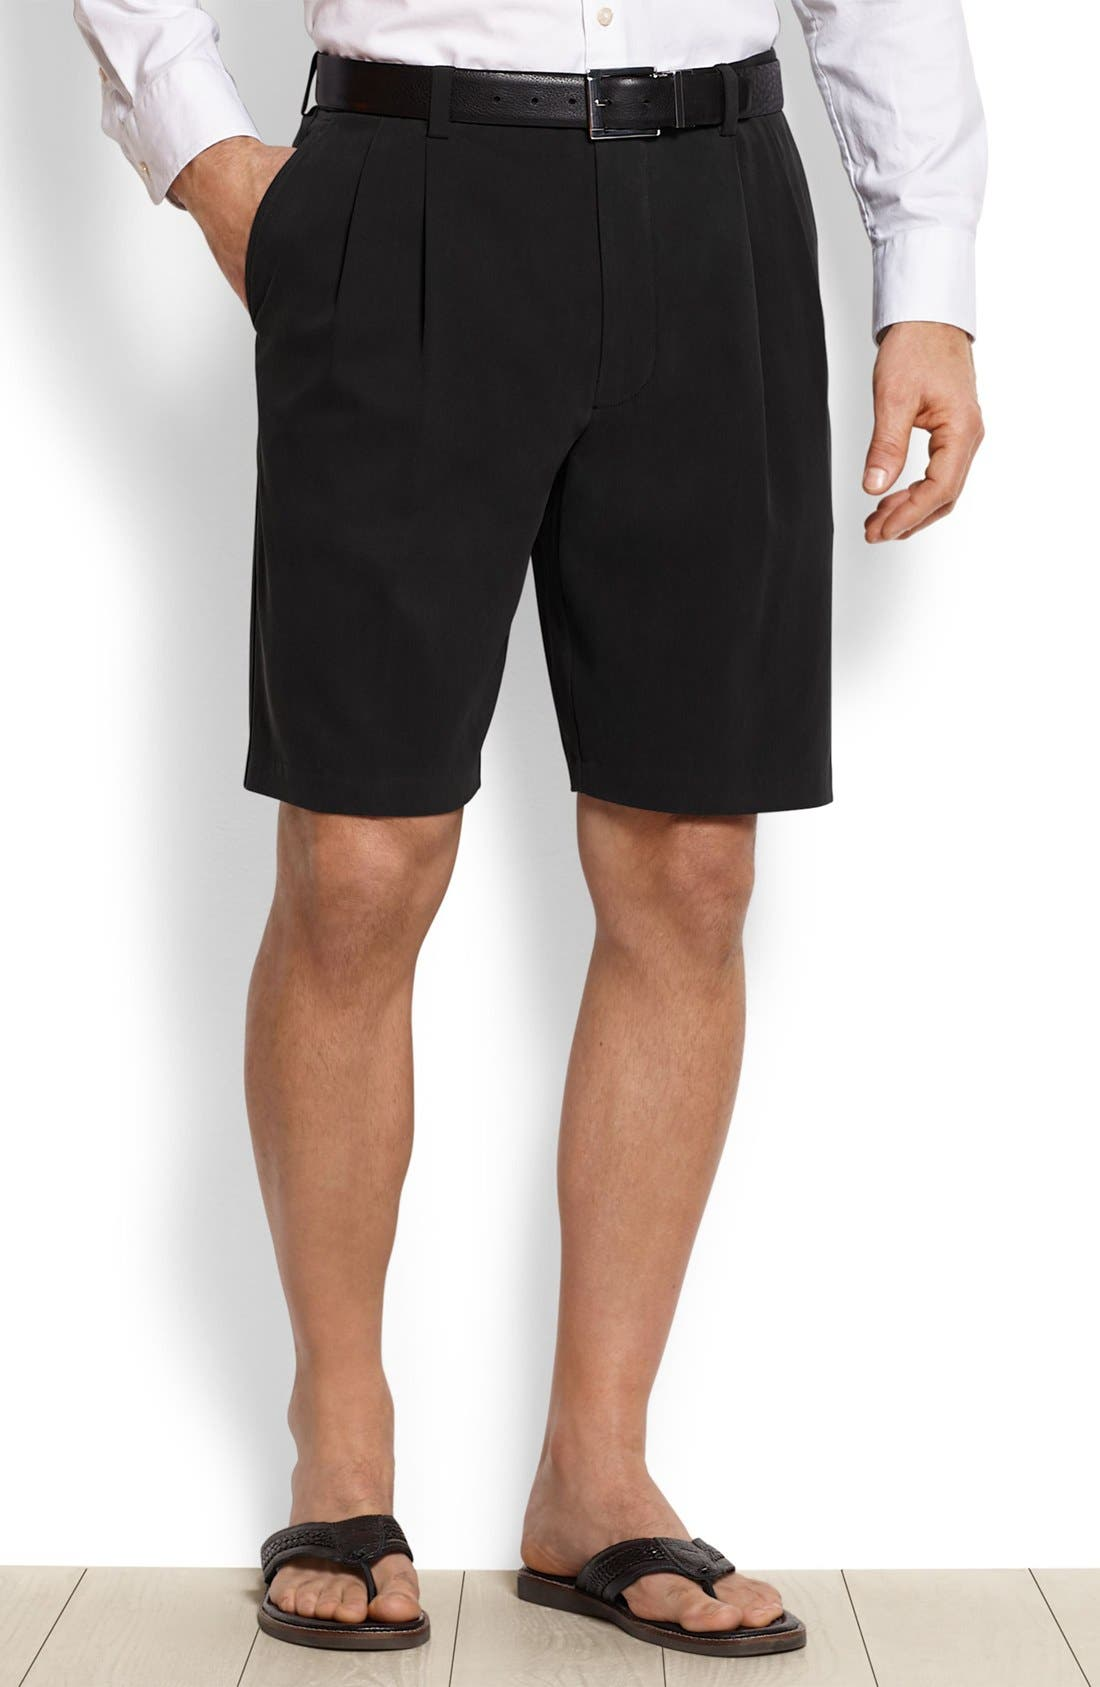 St. Thomas Pleated Shorts,                             Main thumbnail 1, color,                             001